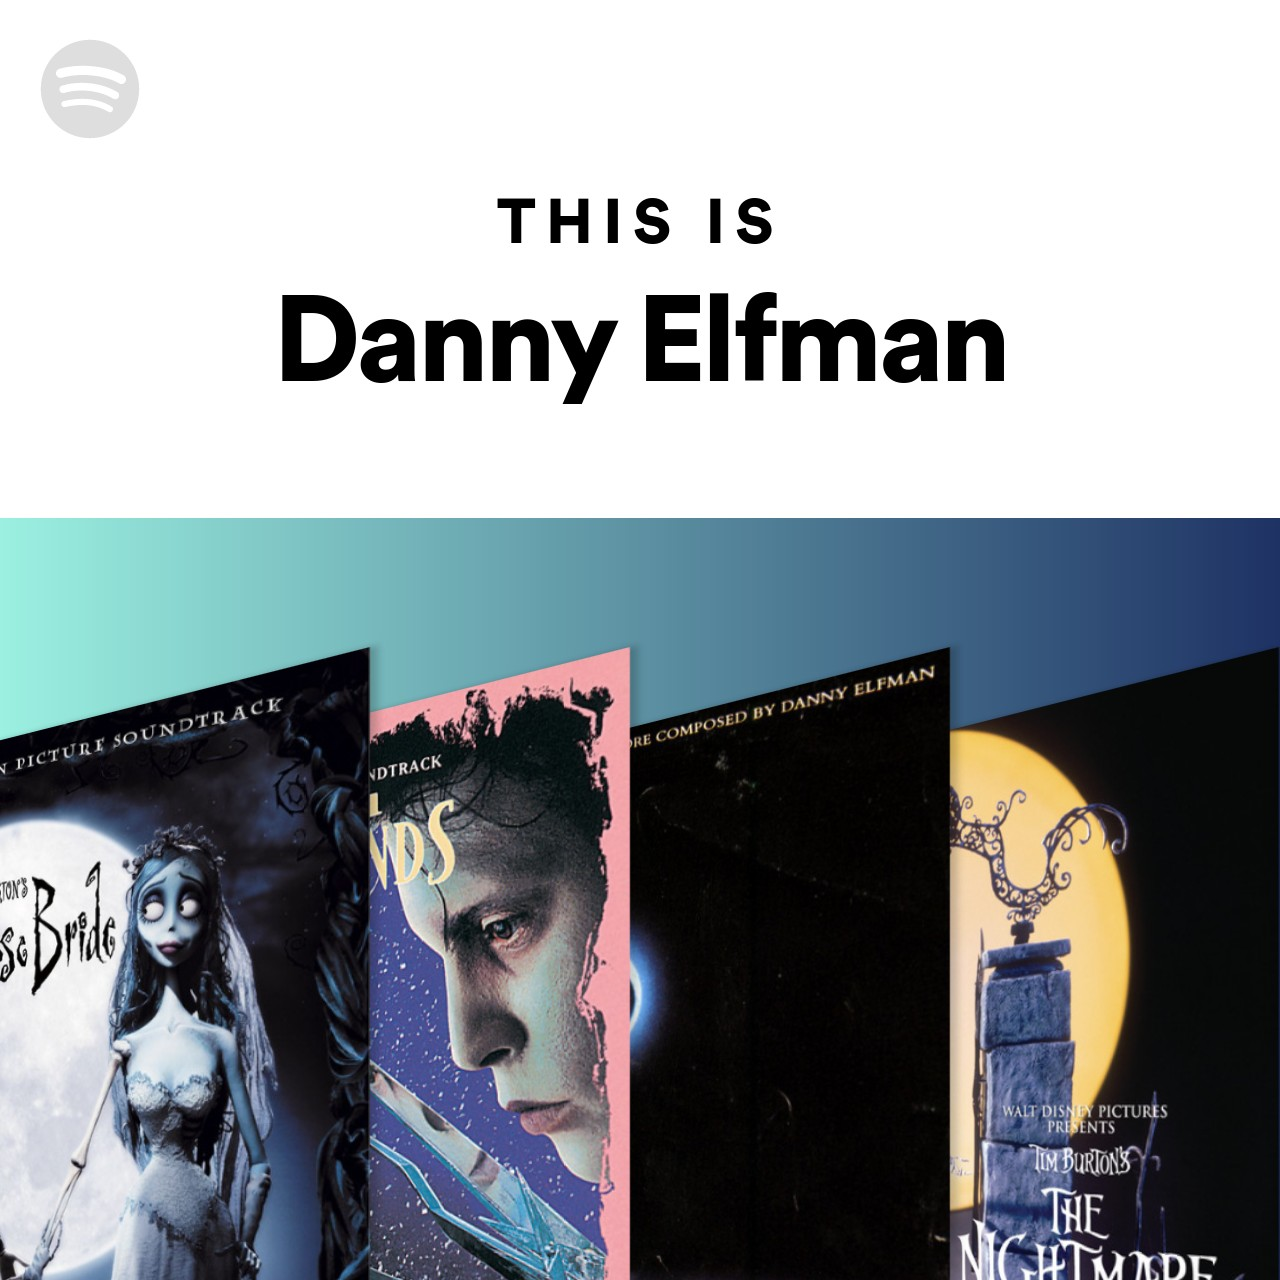 This Is Danny Elfman